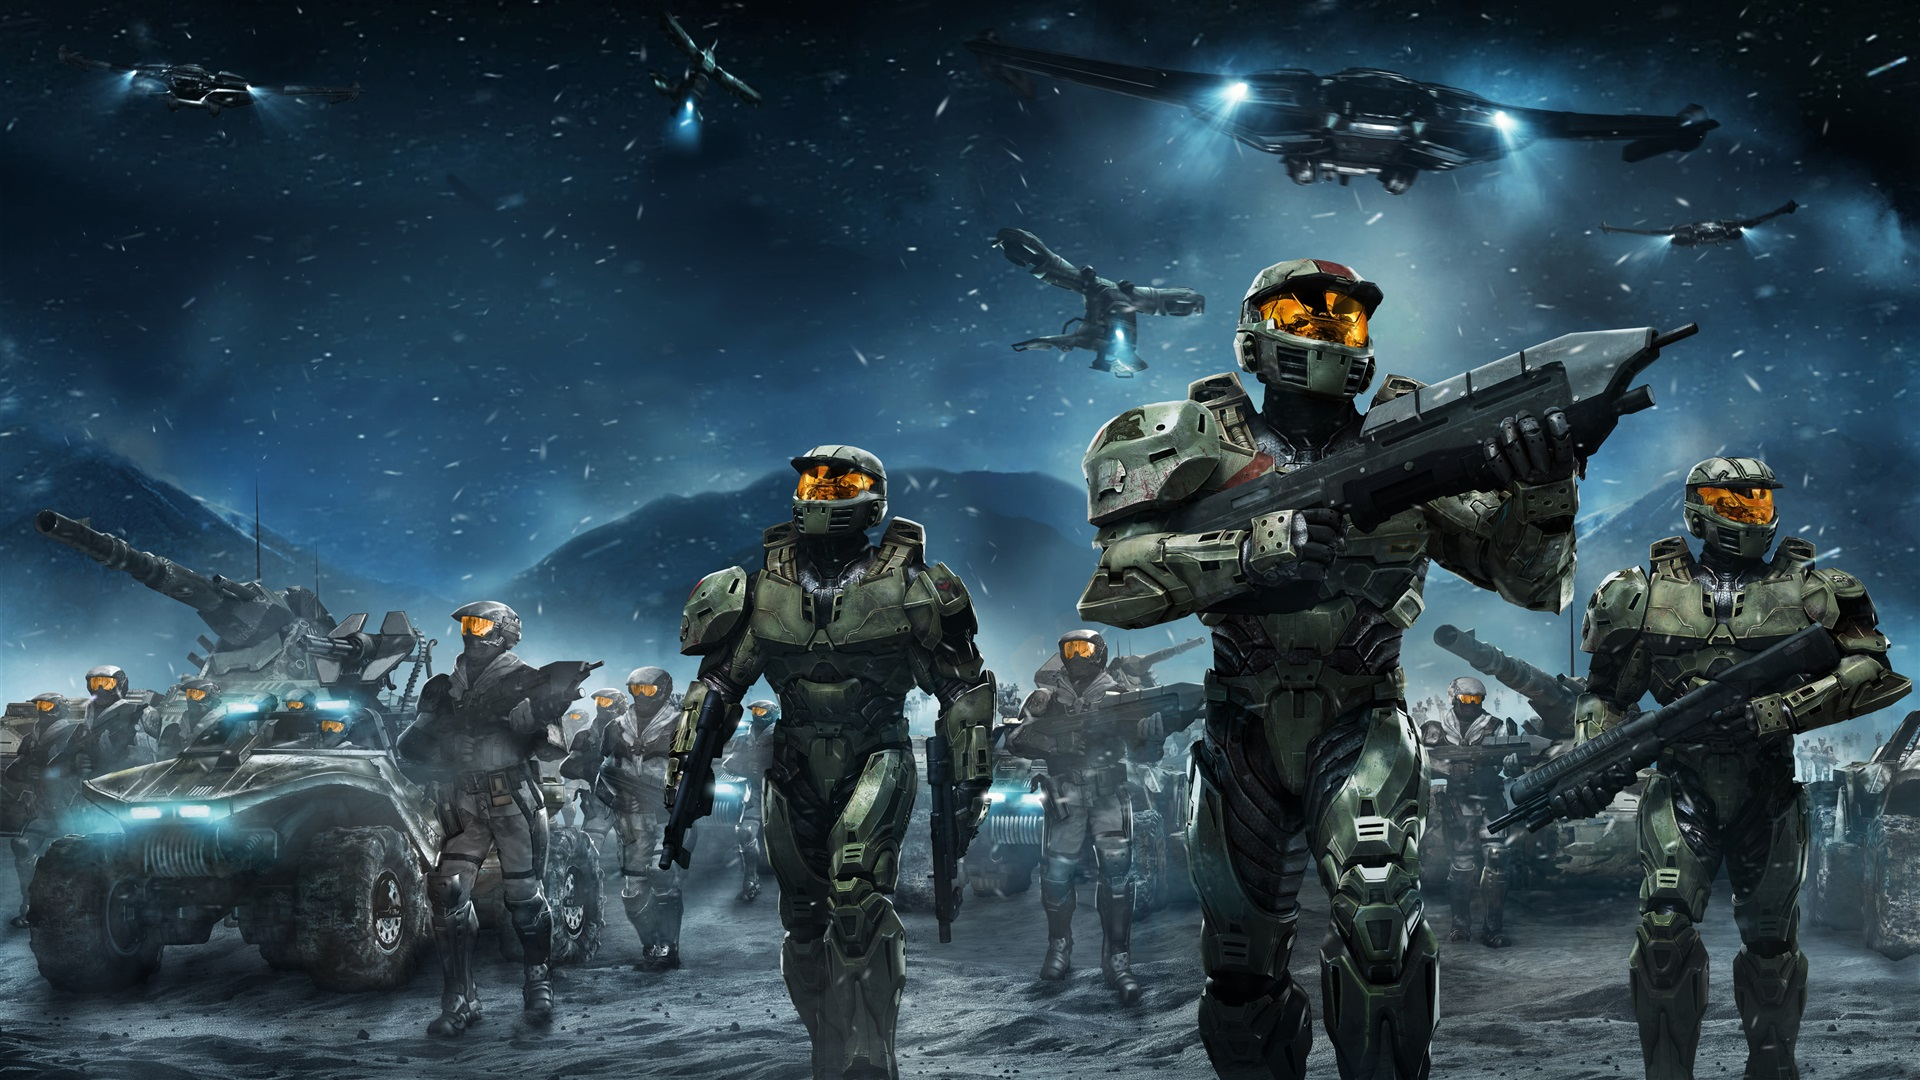 Wallpaper Halo Wars, Video Games 3840x2160 UHD 4K Picture